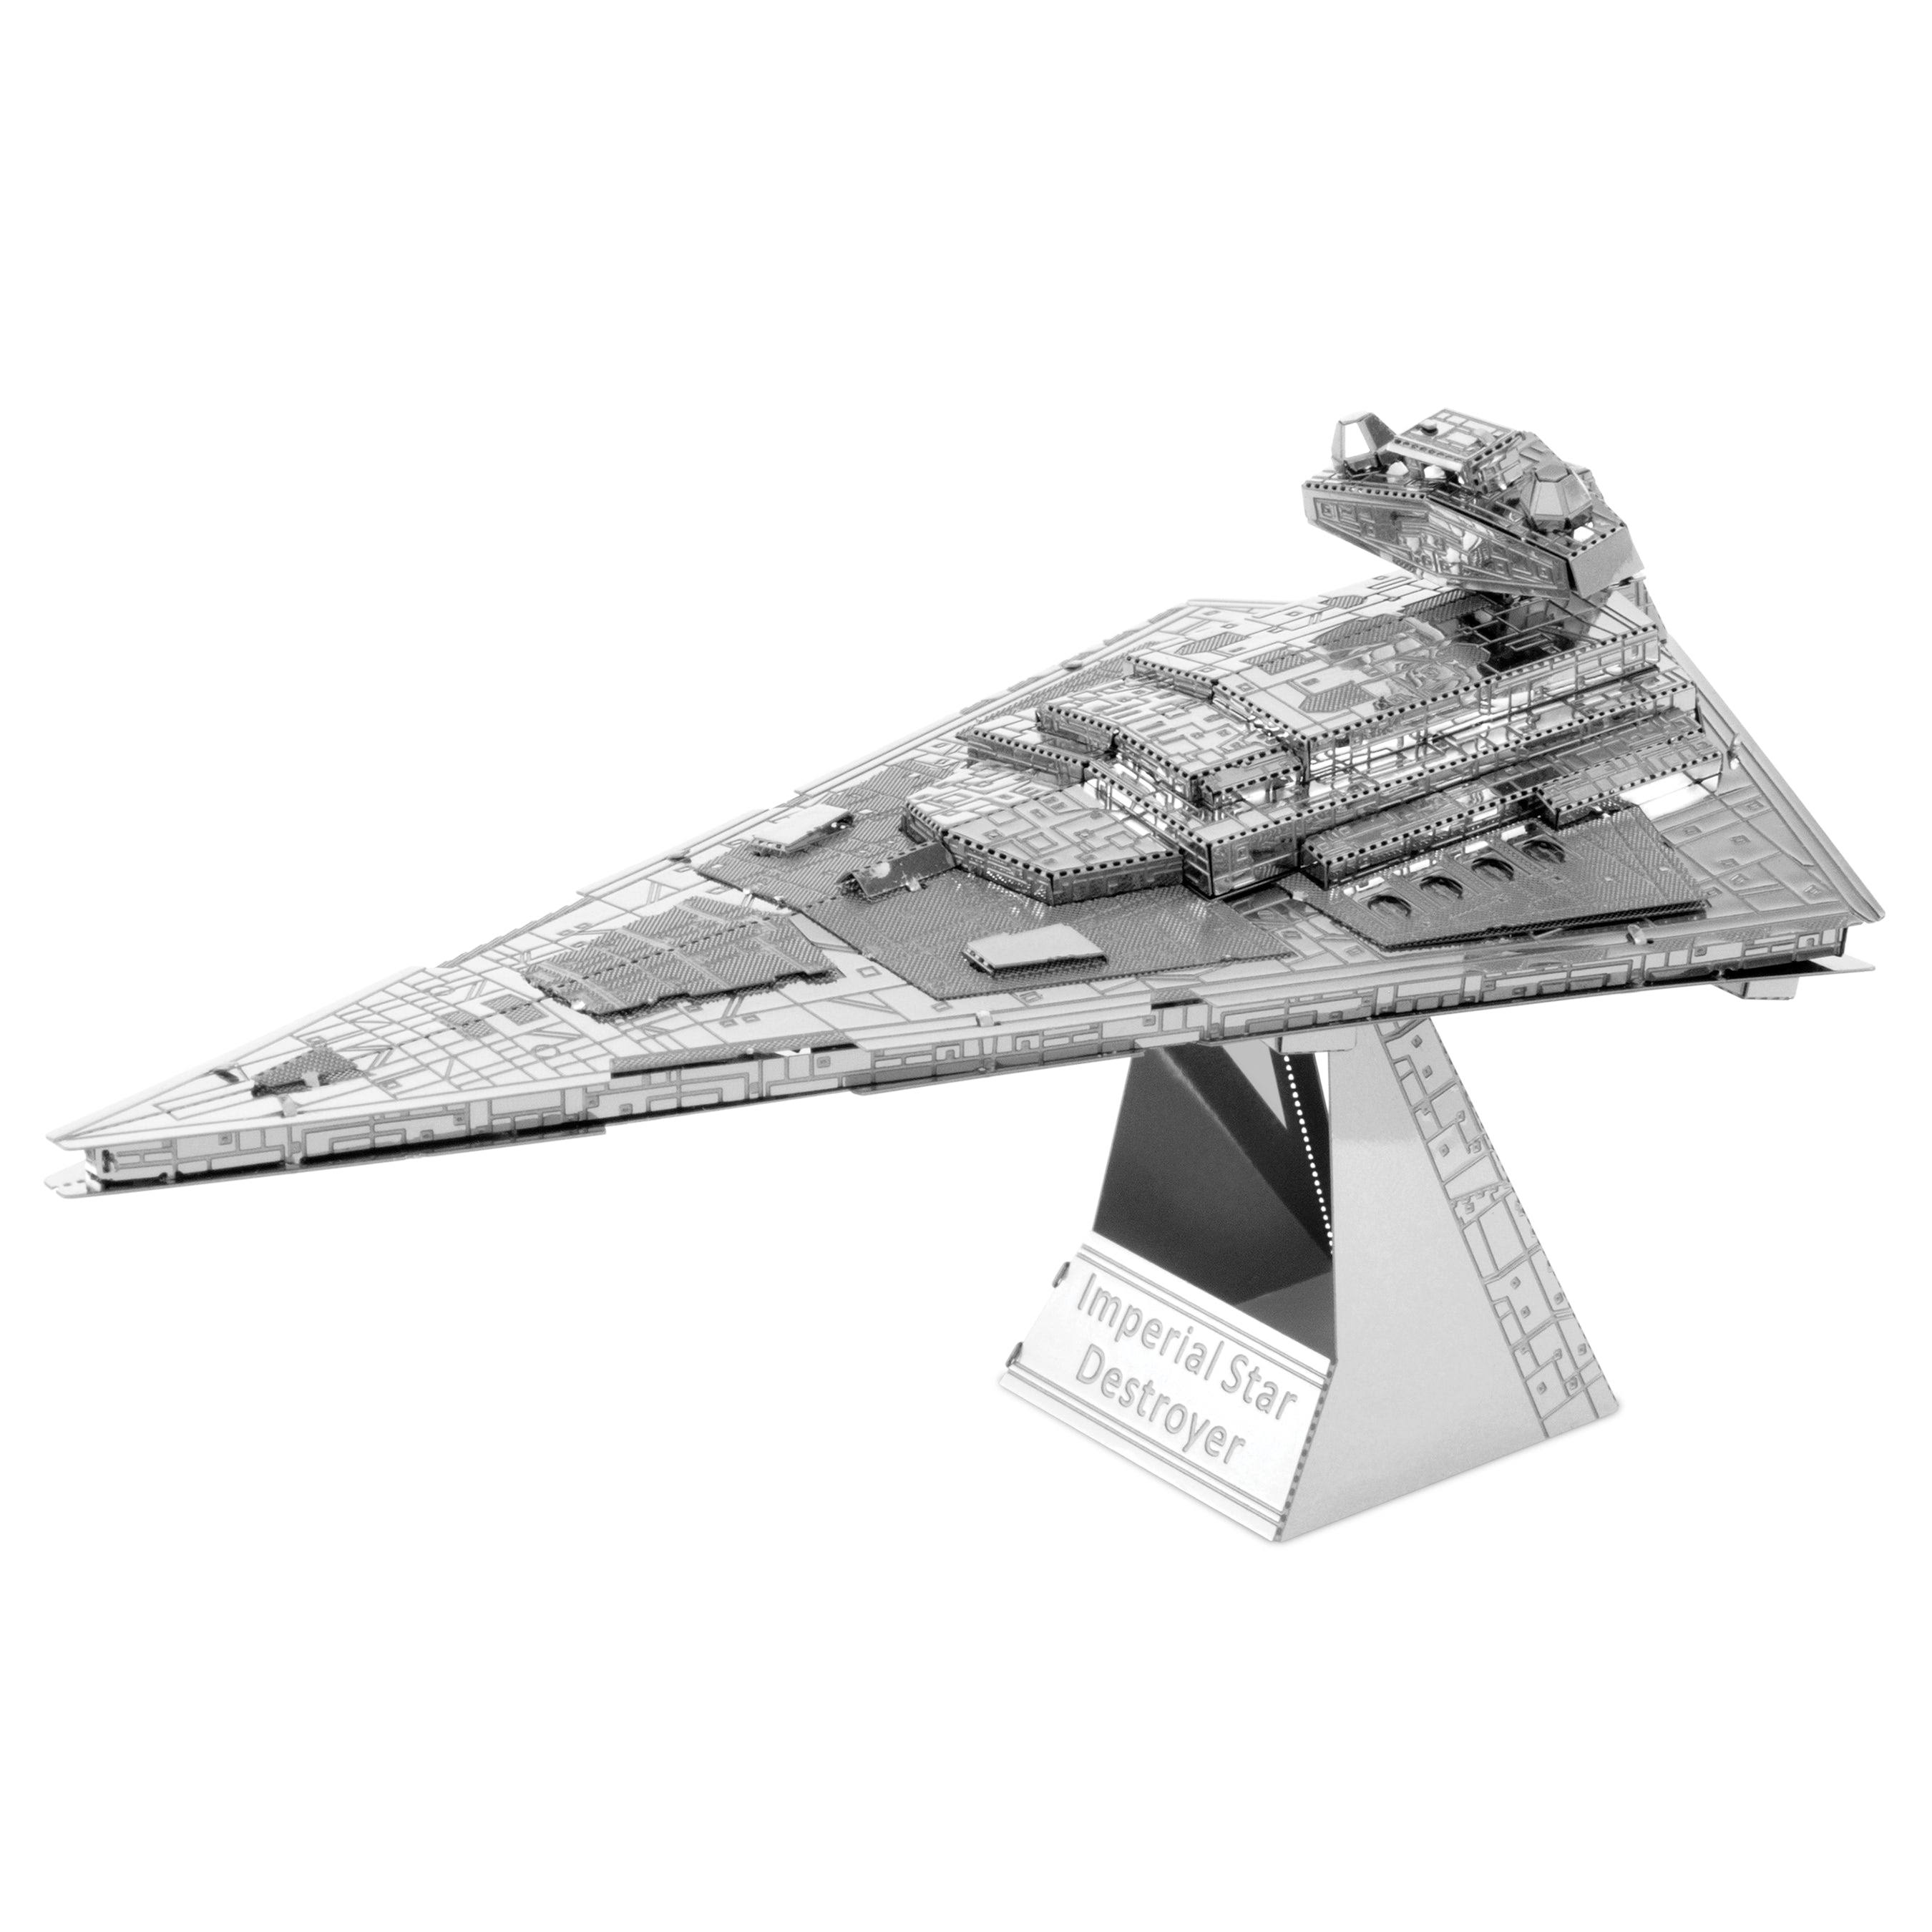 Metal Earth Star Wars Imperial Star Destroyer Kit